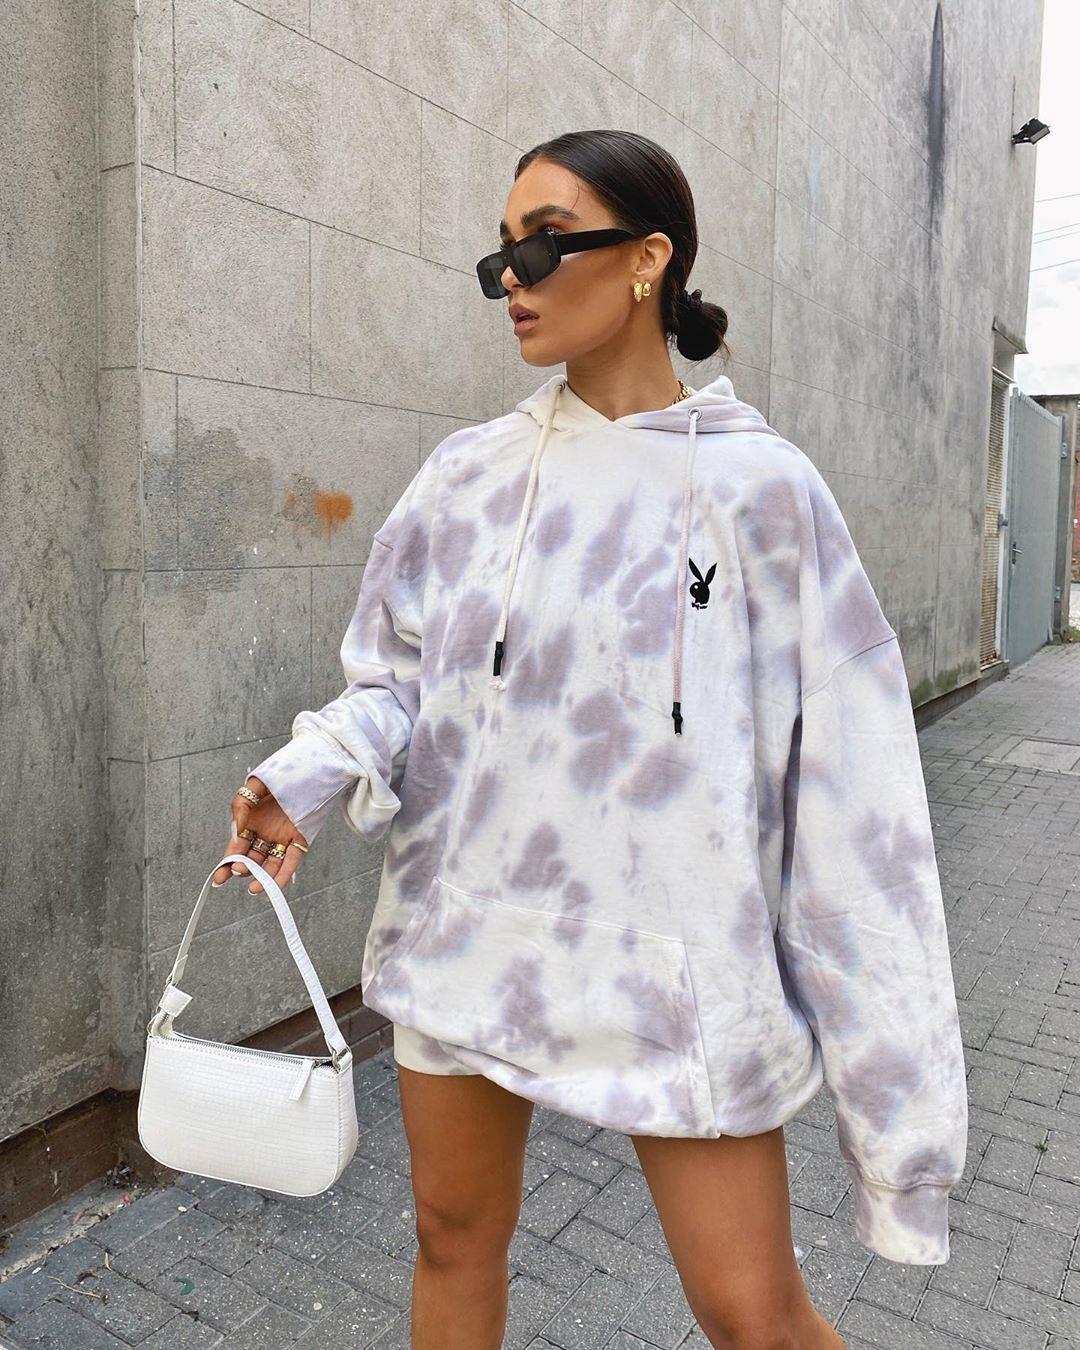 Alicia Roddy S Instagram Profile Post Is There Anything Comfier Than An Oversized Hoodie They Are My Favourite Tie Dye Hoodie Hoodie Dress Everyday Outfits [ 1350 x 1080 Pixel ]